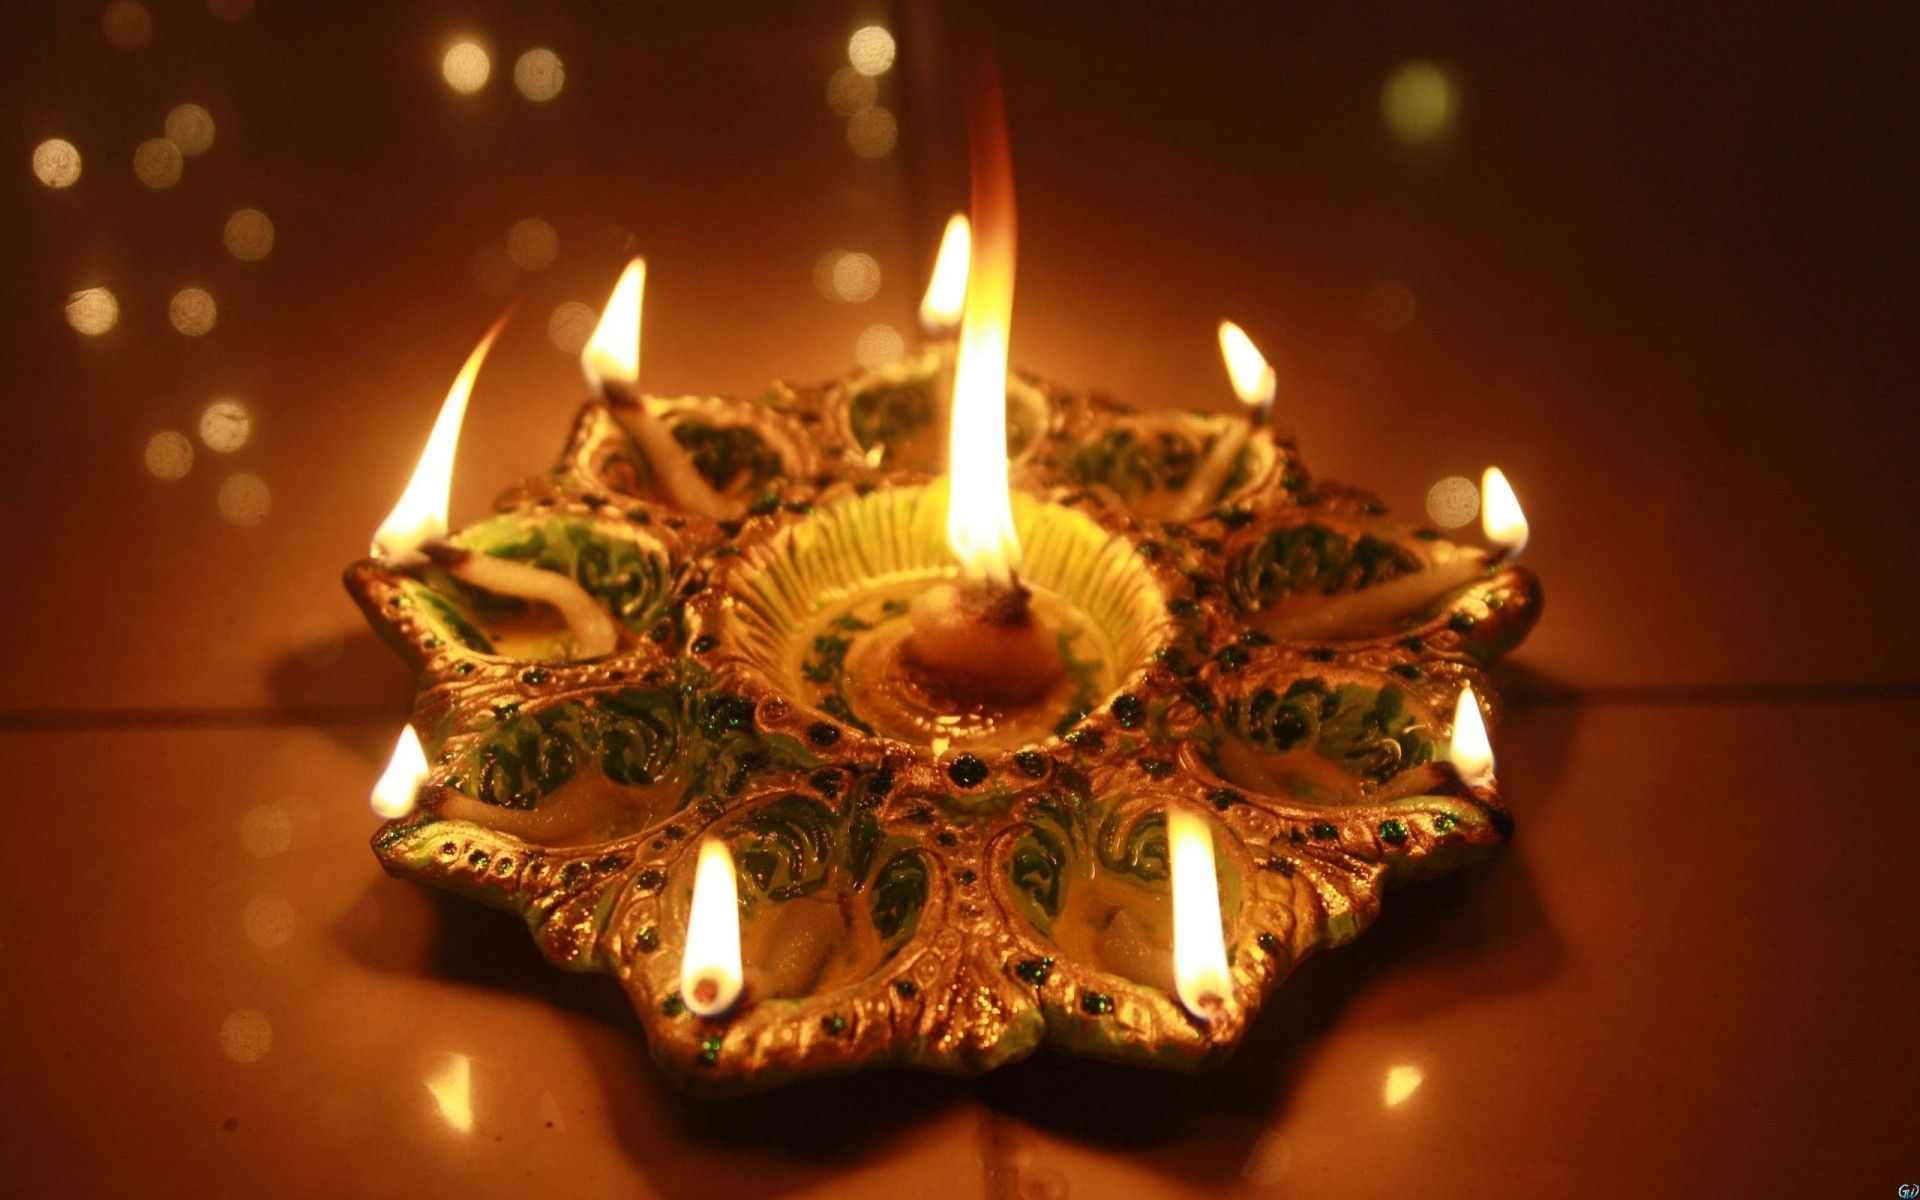 Karthigai Deepam A Great Opportunity To Remove Darkness From Life Karthigaideepam Is A Popular Festiv Diwali Candles Diwali Decorations Diwali Wallpaper